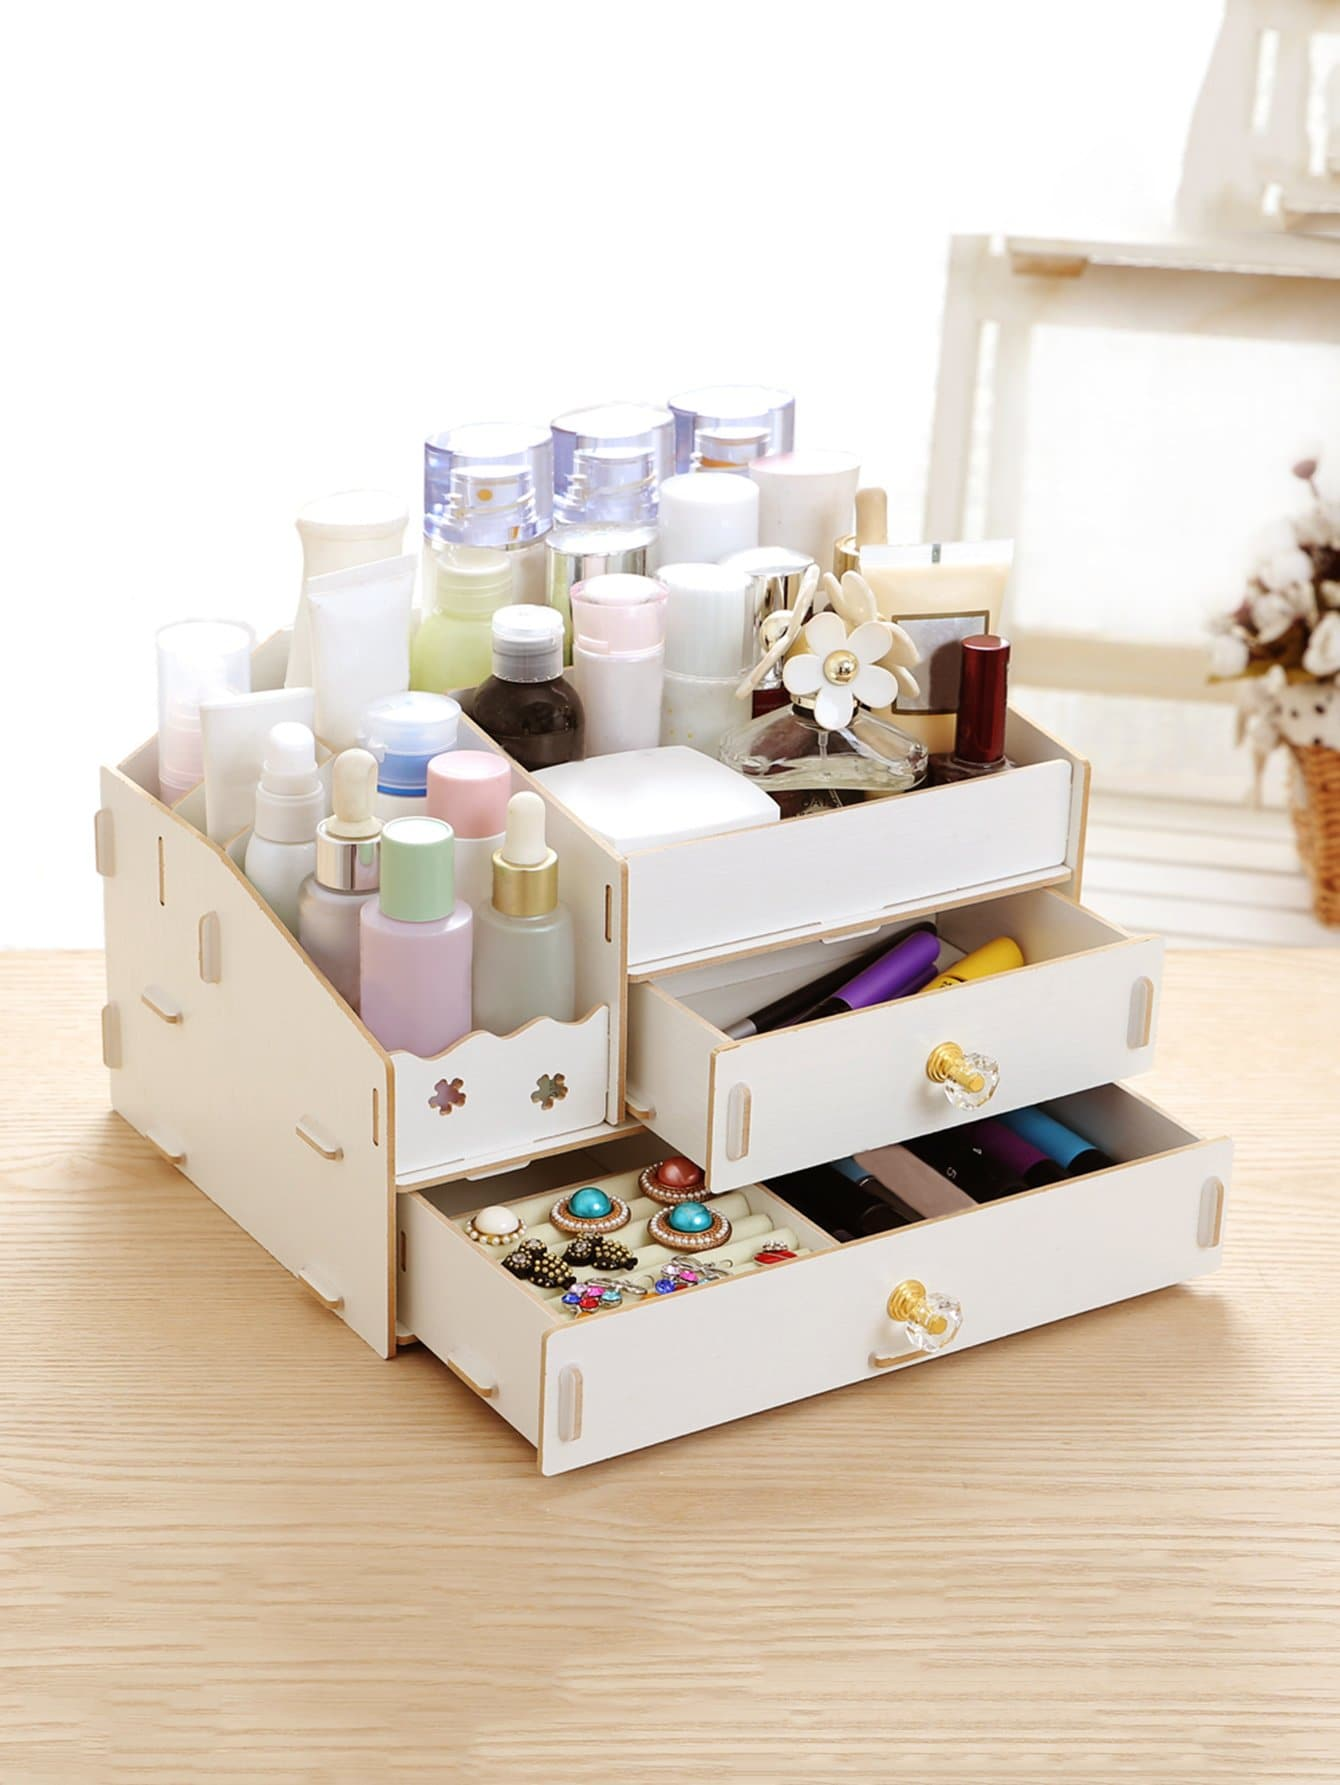 Drawer Desk Organizer kitcox01761easaf3274bl value kit safco one drawer hospitality organizer saf3274bl and clorox disinfecting wipes cox01761ea